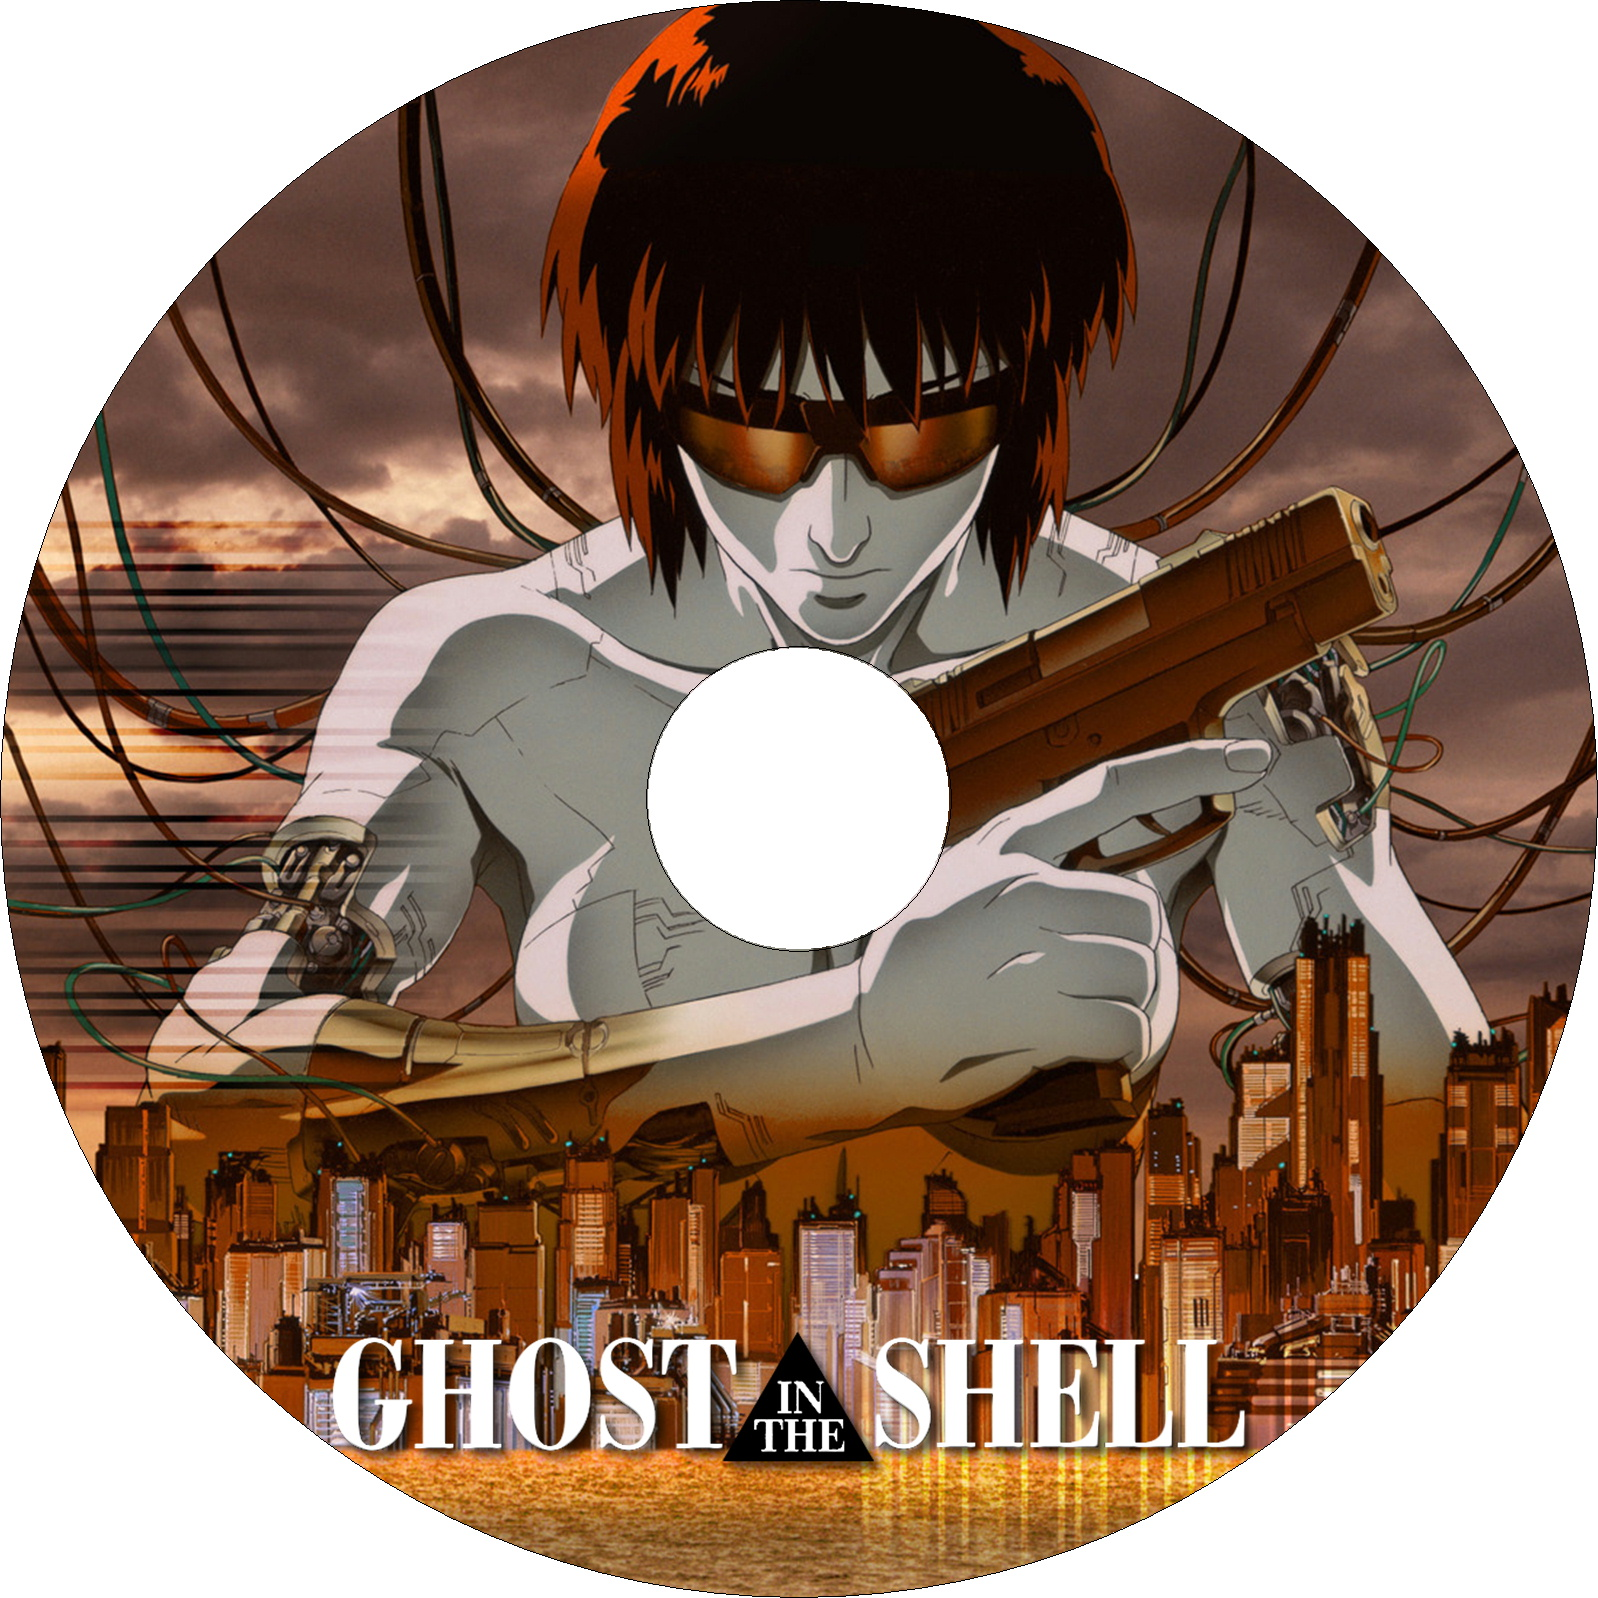 GHOST IN THE SHELL 攻殻機動隊 ラベル2